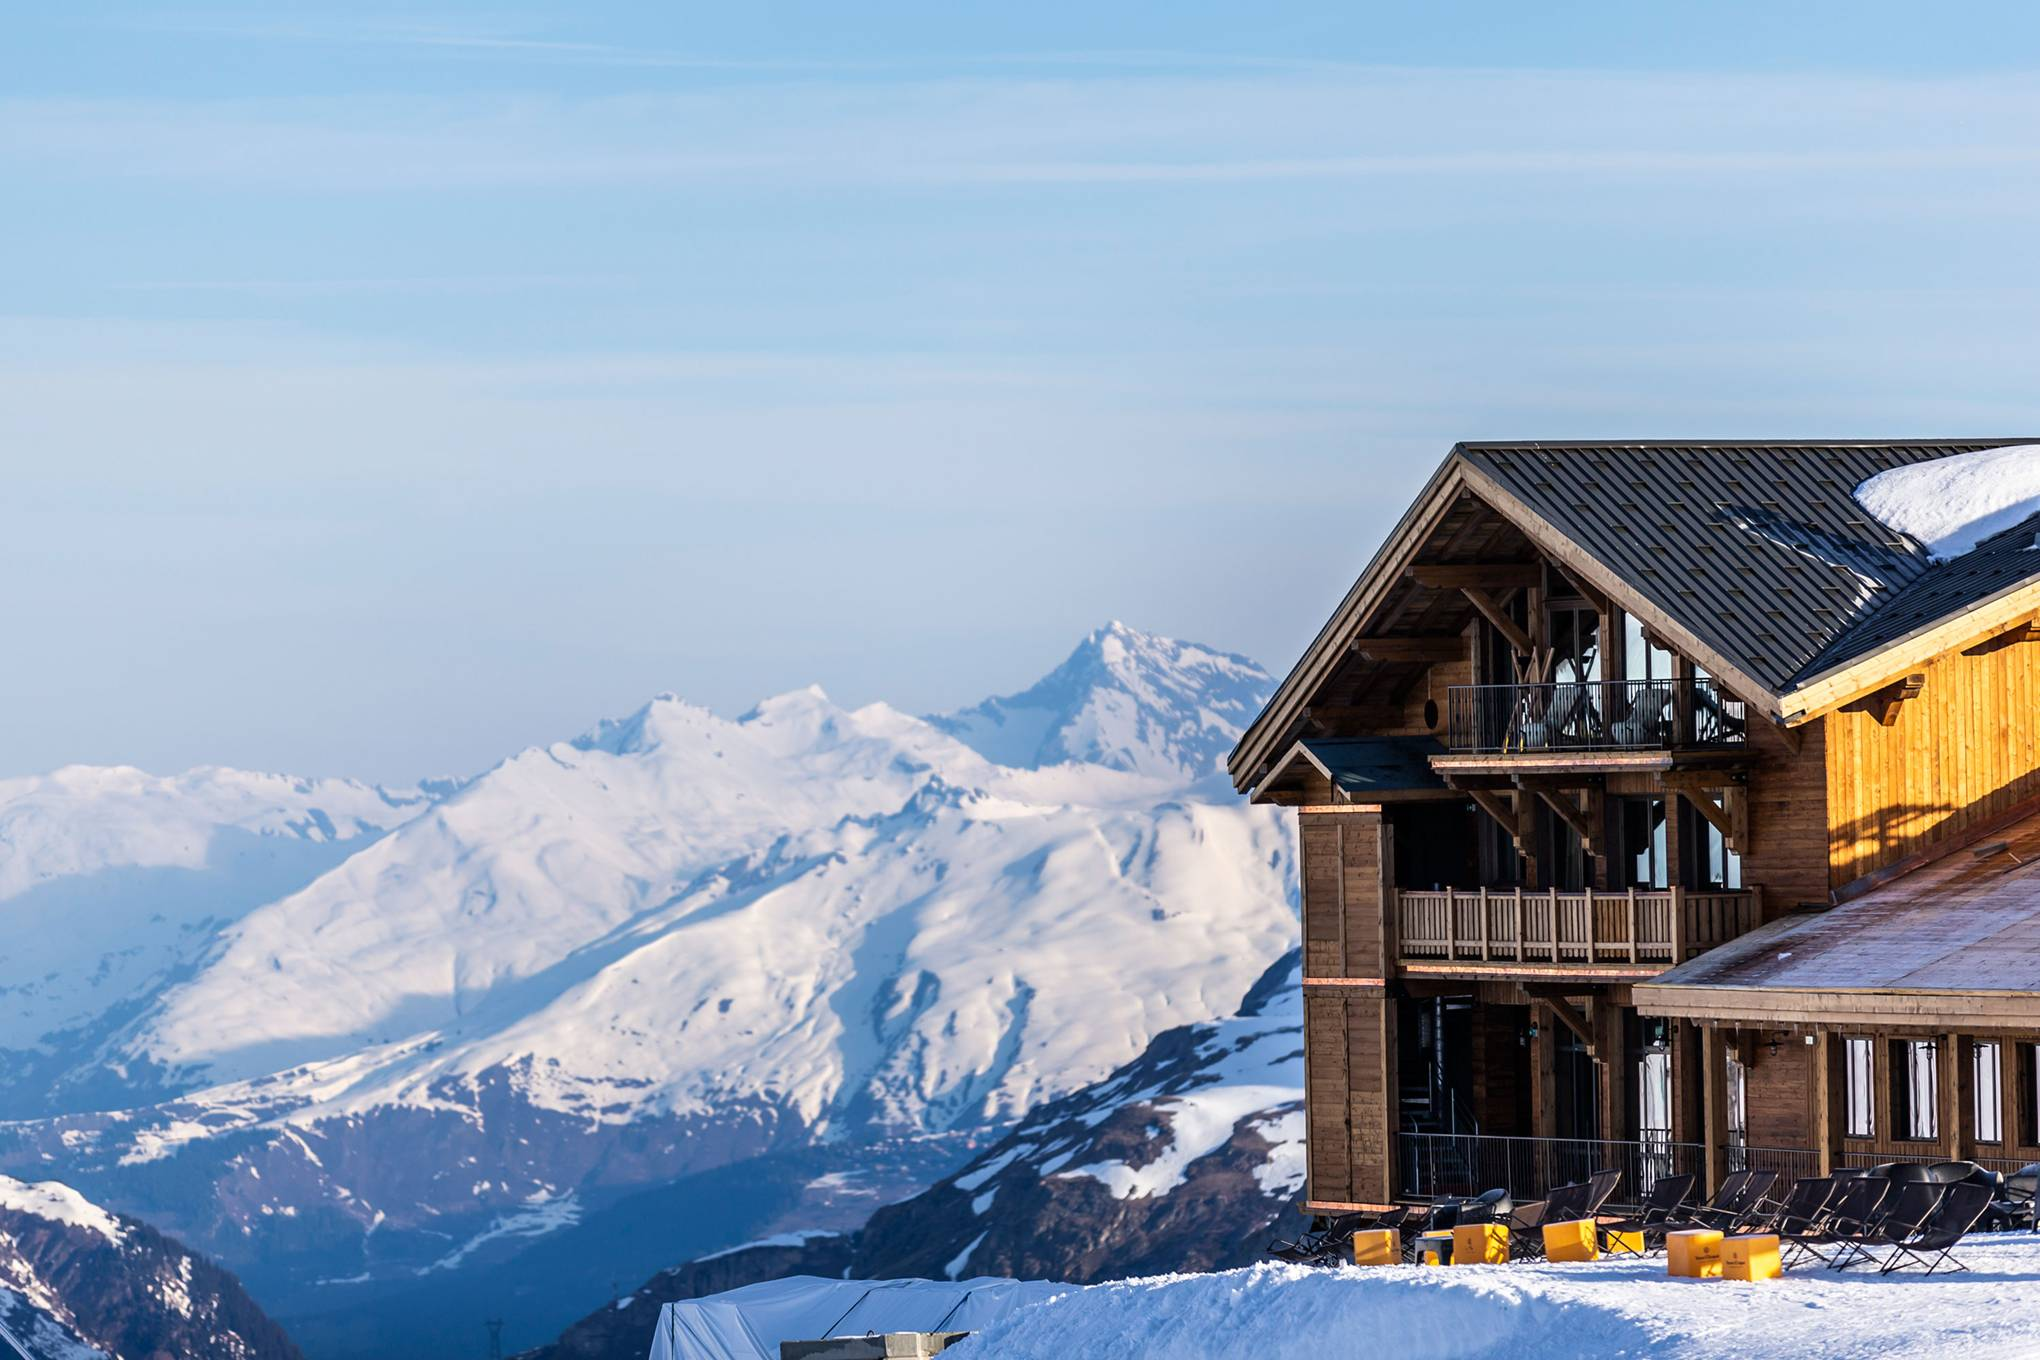 Le Refuge de Solaise: contemporary Alpine chic in France's highest hotel